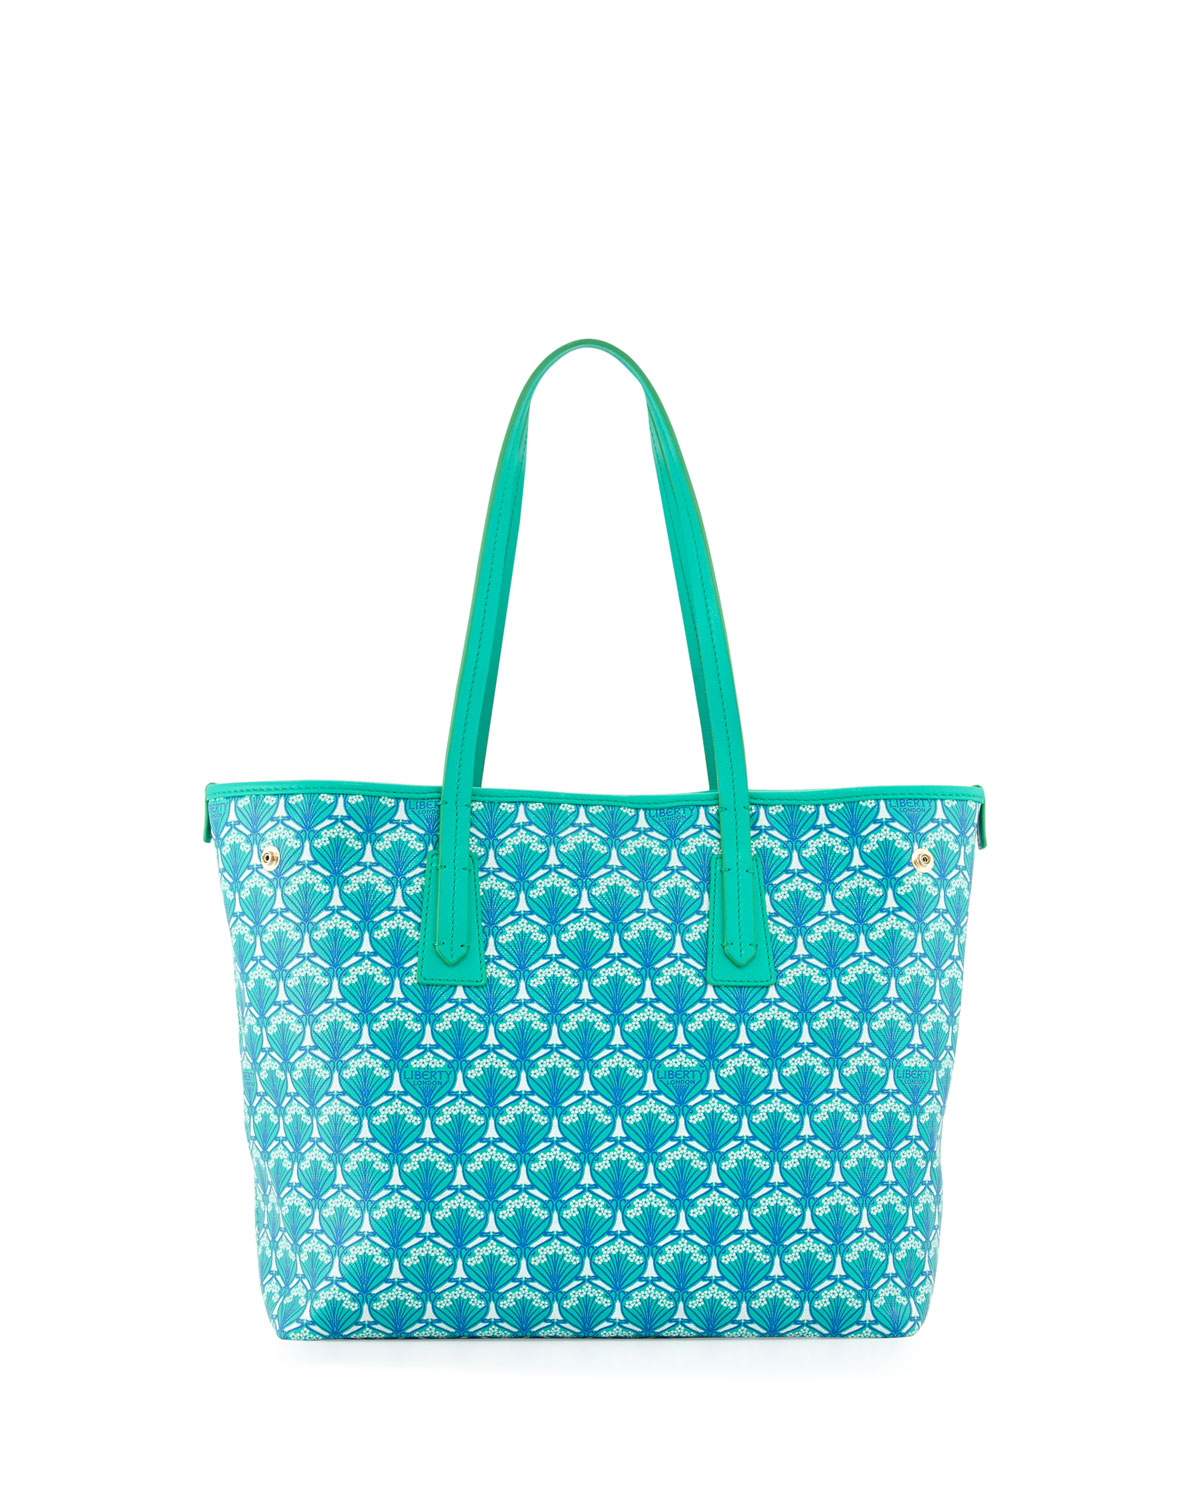 Marlborough Iphis Printed Little Tote Bag, Green